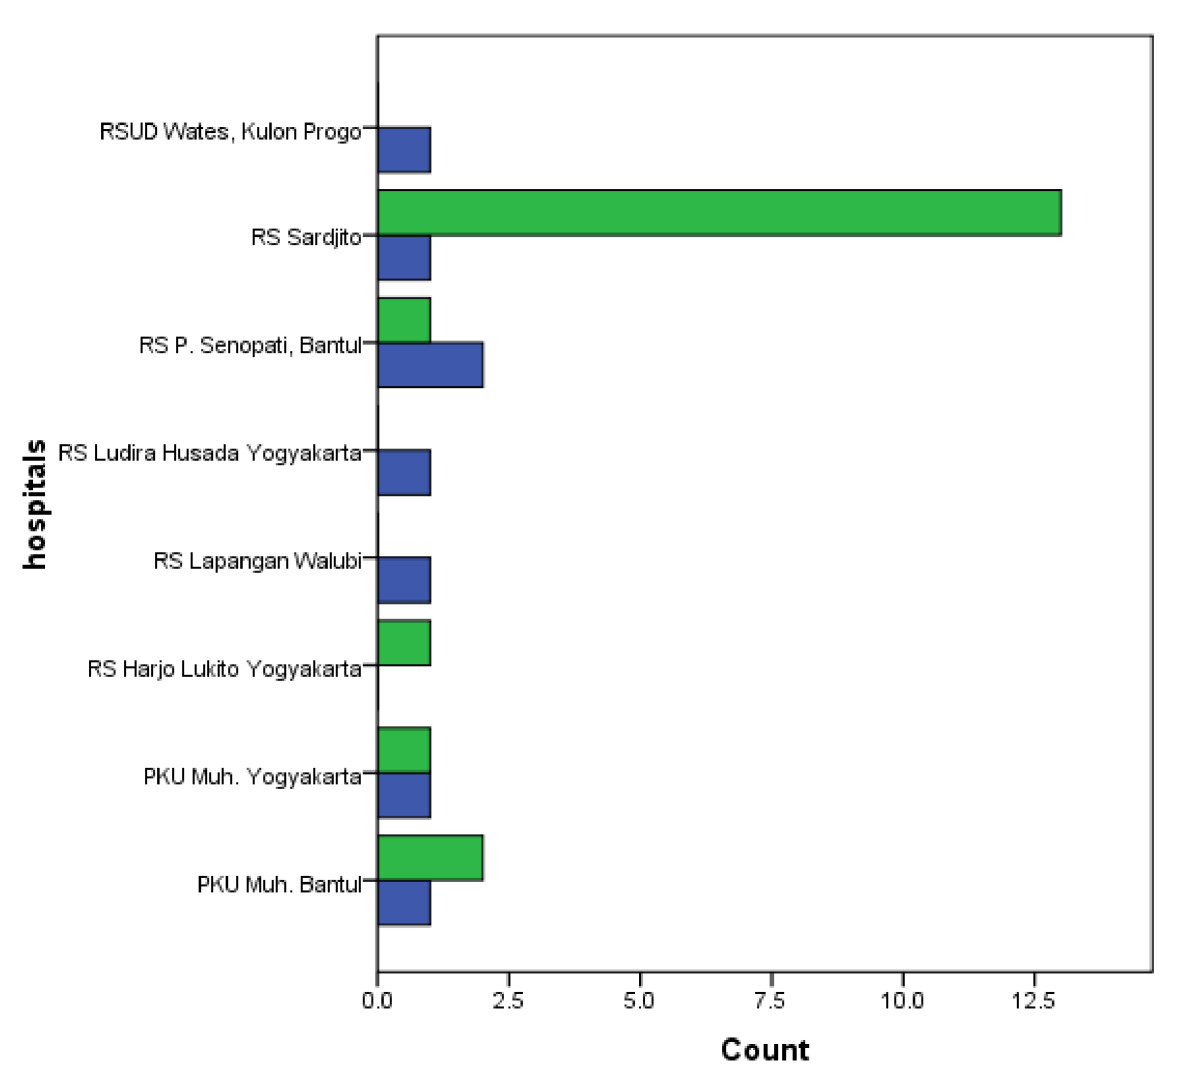 https://static-content.springer.com/image/art%3A10.1186%2F1756-0500-2-34/MediaObjects/13104_2008_Article_172_Fig3_HTML.jpg